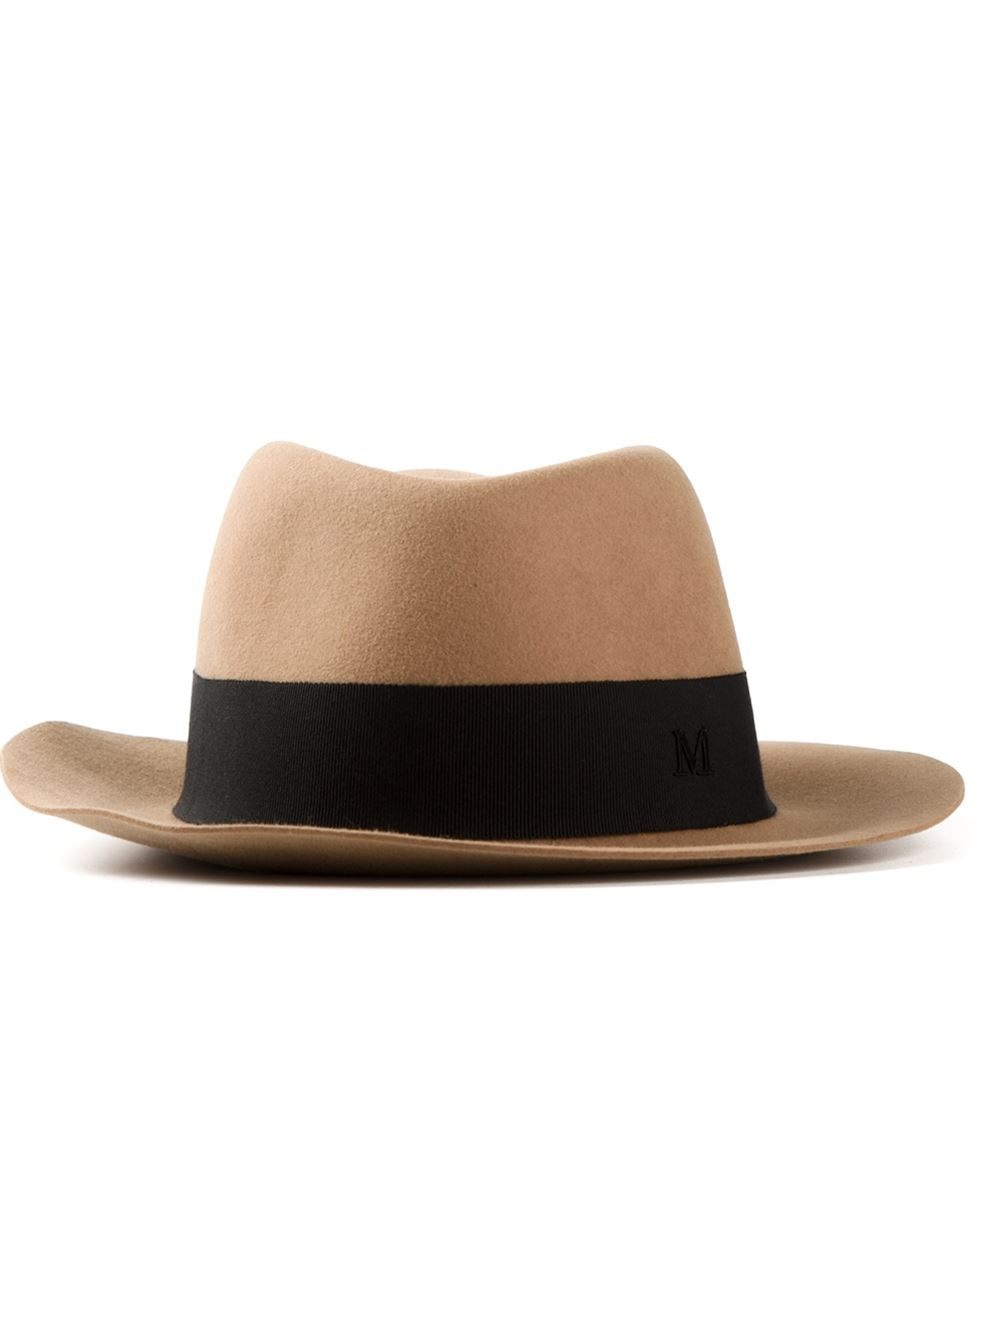 Lyst maison michel andre hat in natural for Maison michel